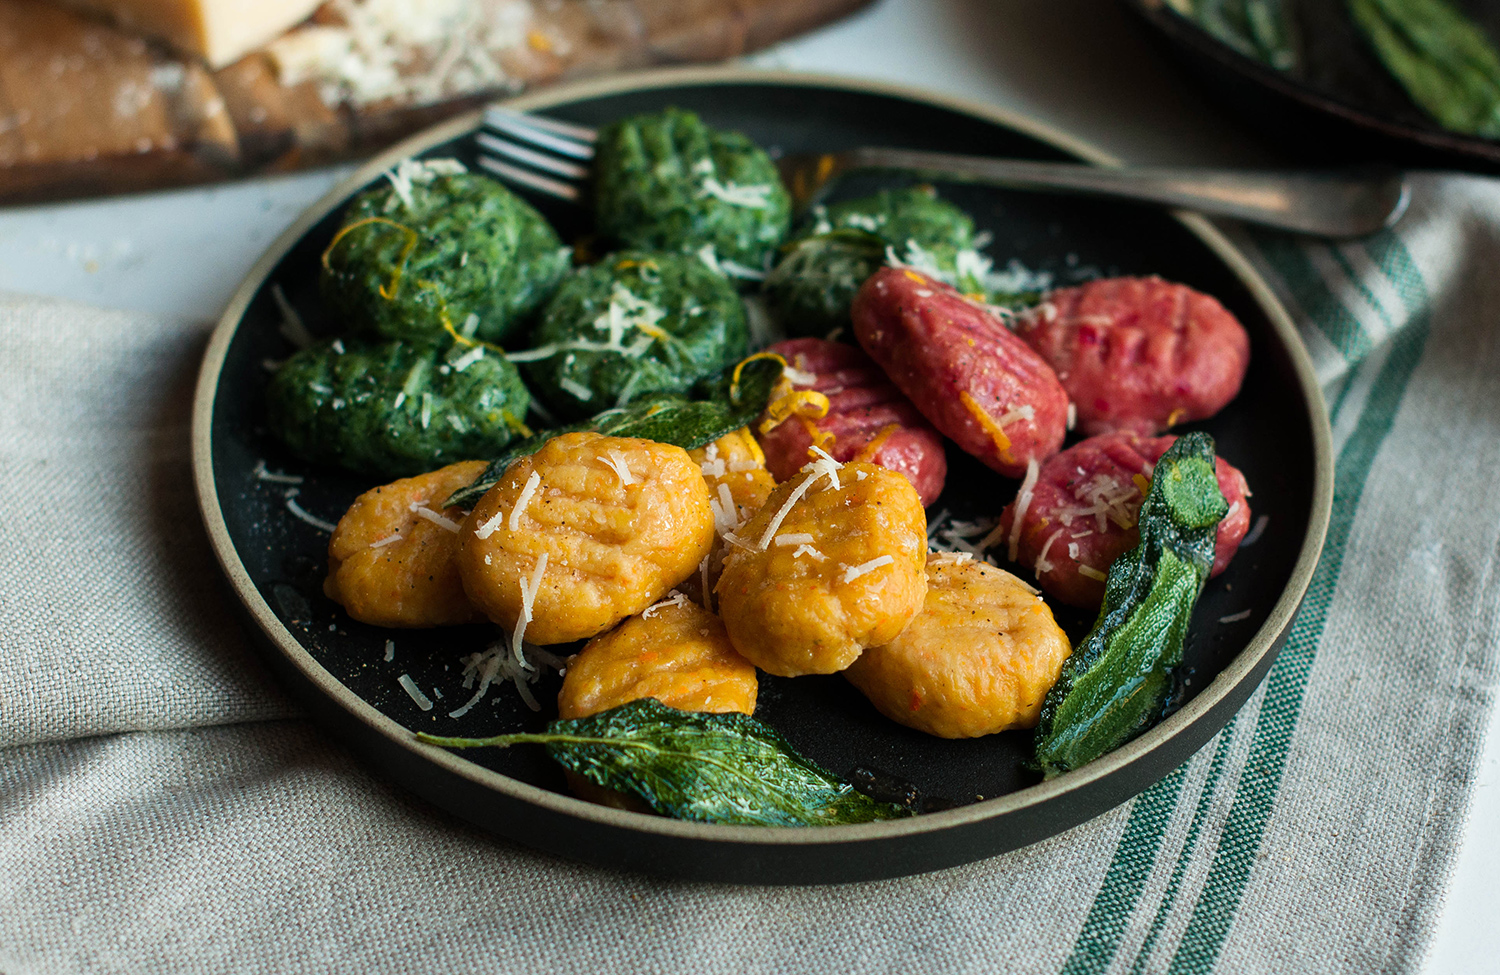 homemade-gnocchi-ricotta-spinach-carrot-beetroot-lea-lou-2